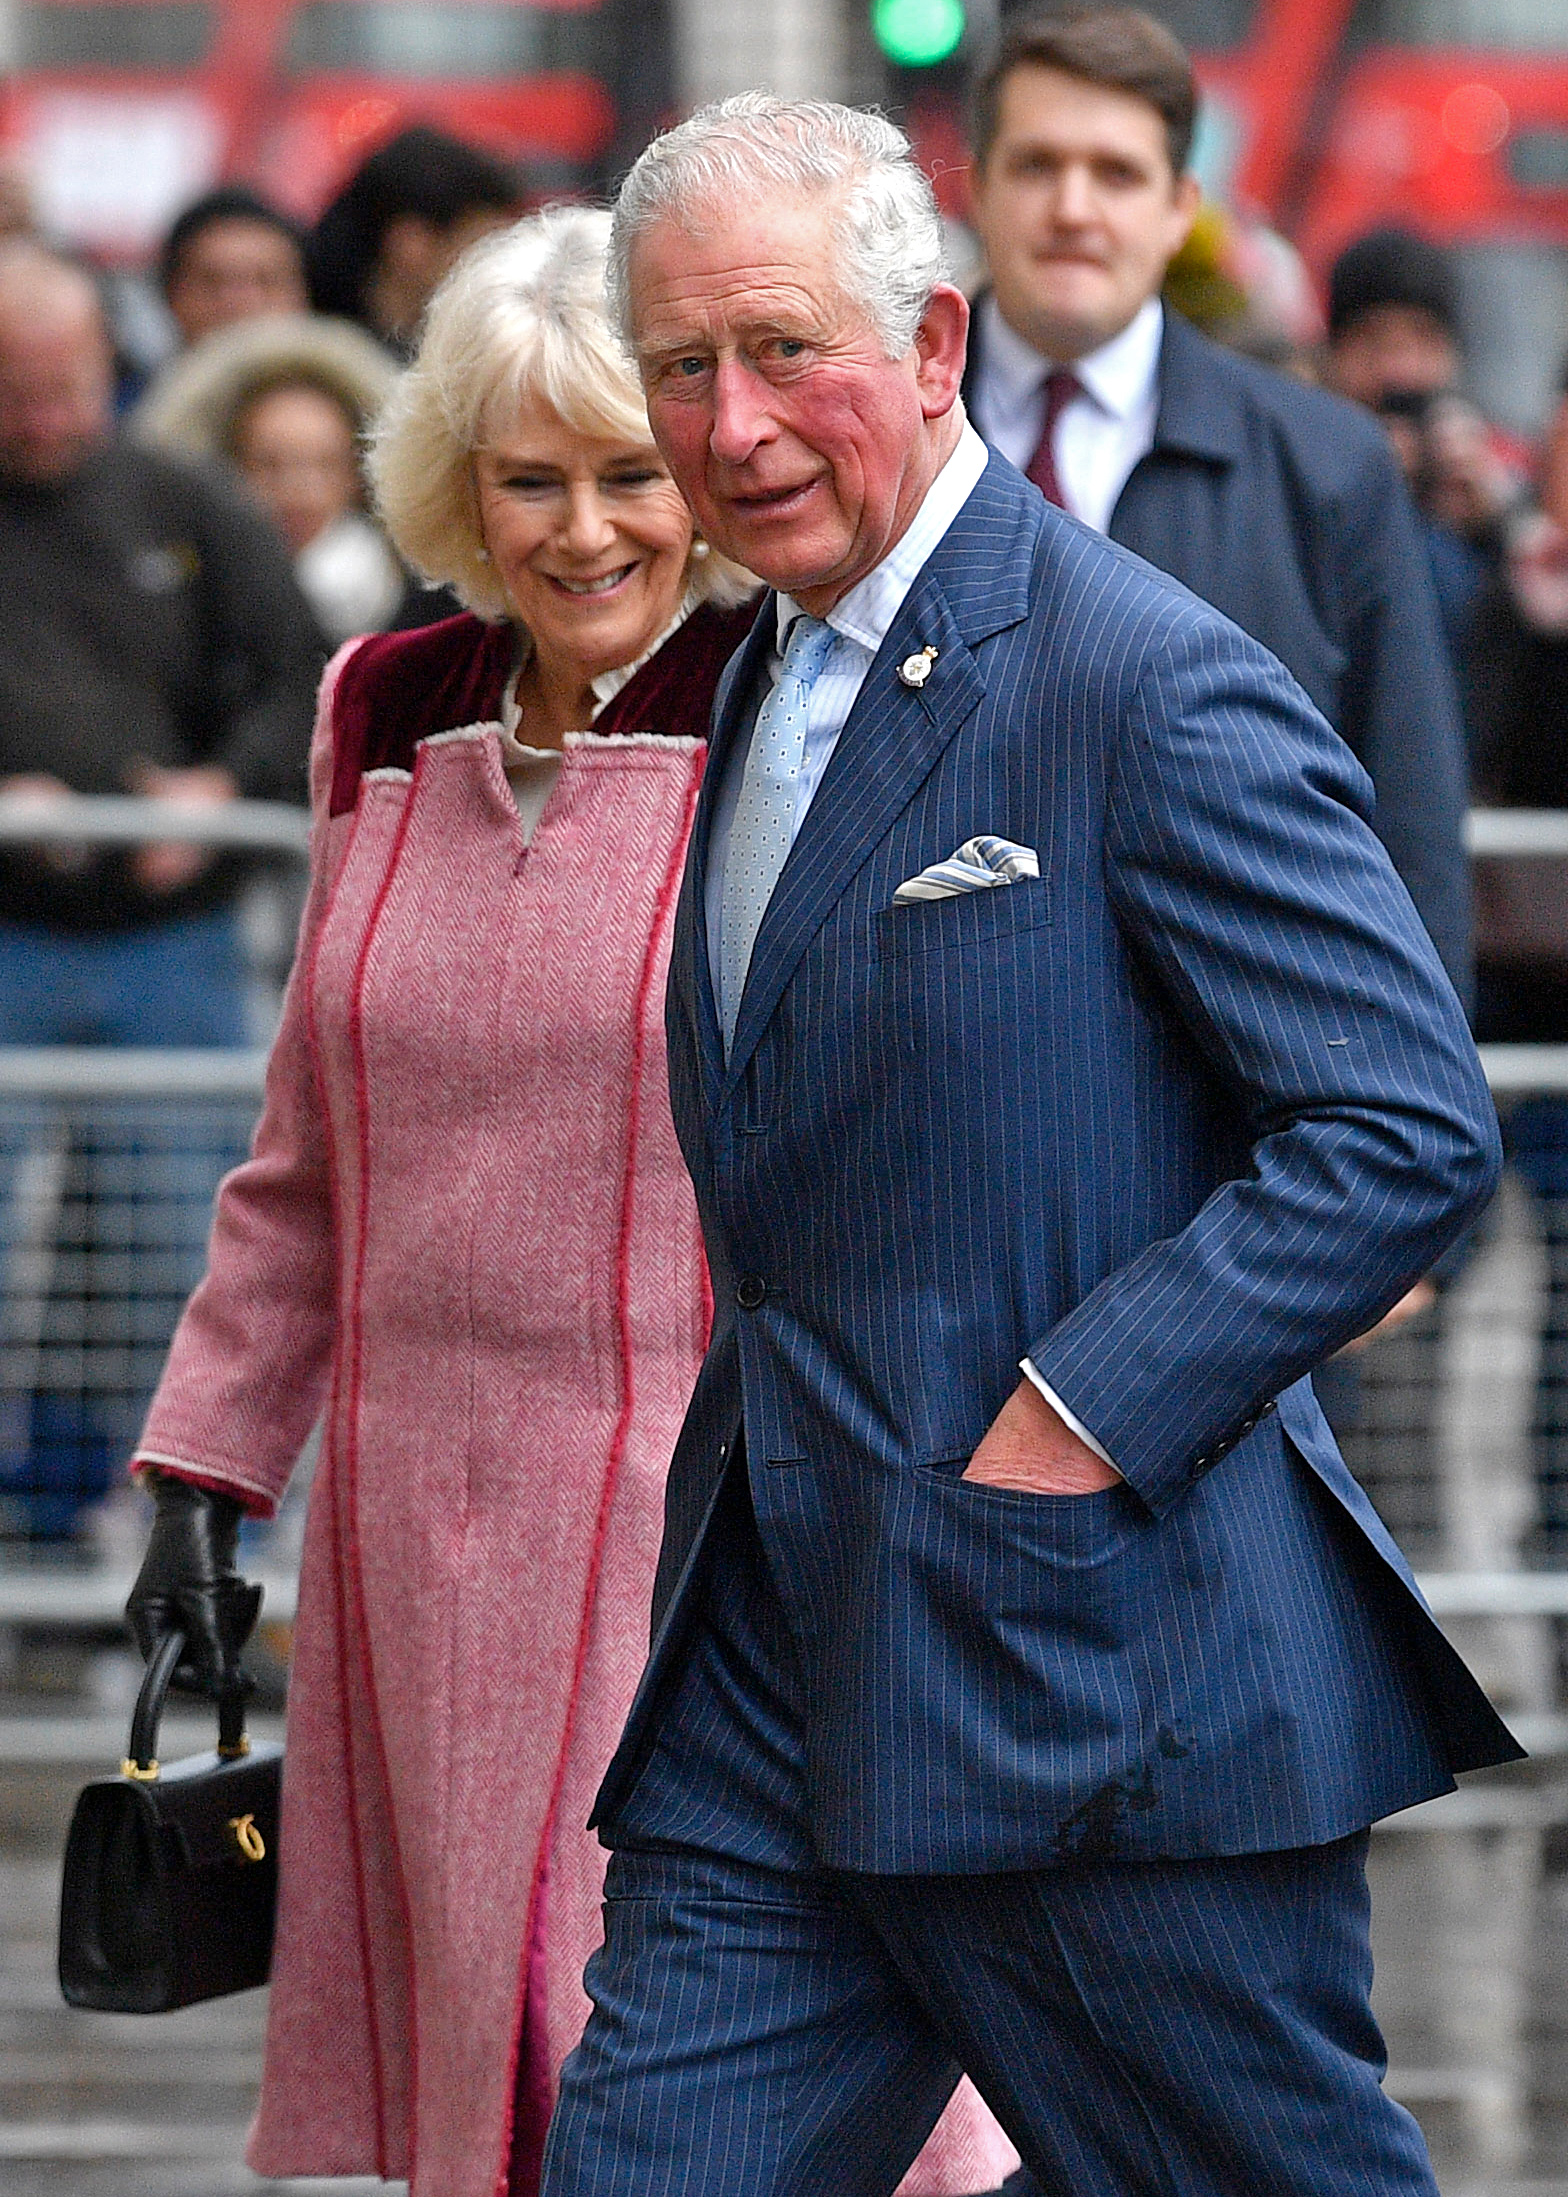 Camilla and Prince Charles. Coronavirus: Buckingham Palace insists Queen 'in good health' as Boris Johnson contracts COVID-19